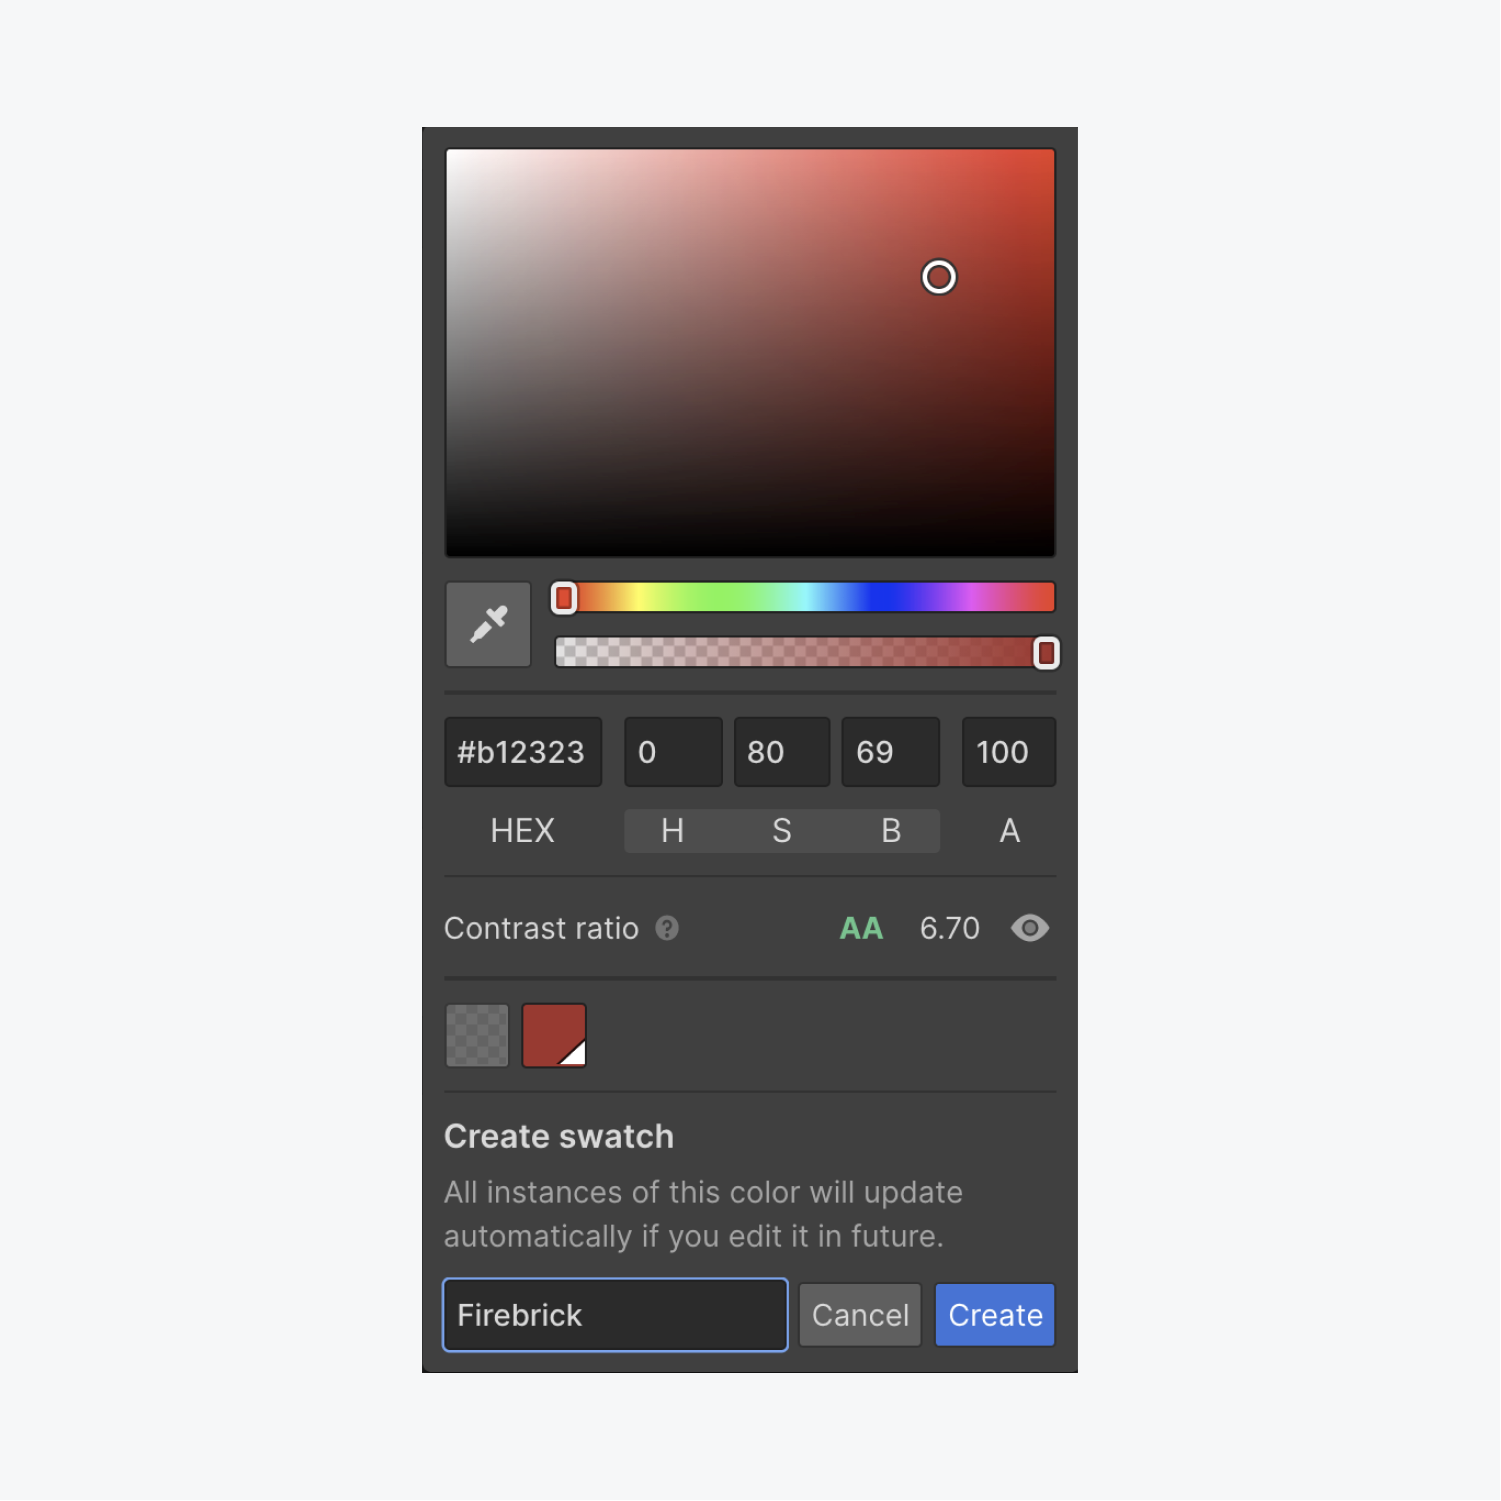 You can create swatches of colors you'd like to reuse throughout your project. Open the color picker, choose your color, click the plus icon, give your swatch a name, and press Create to save your swatch.